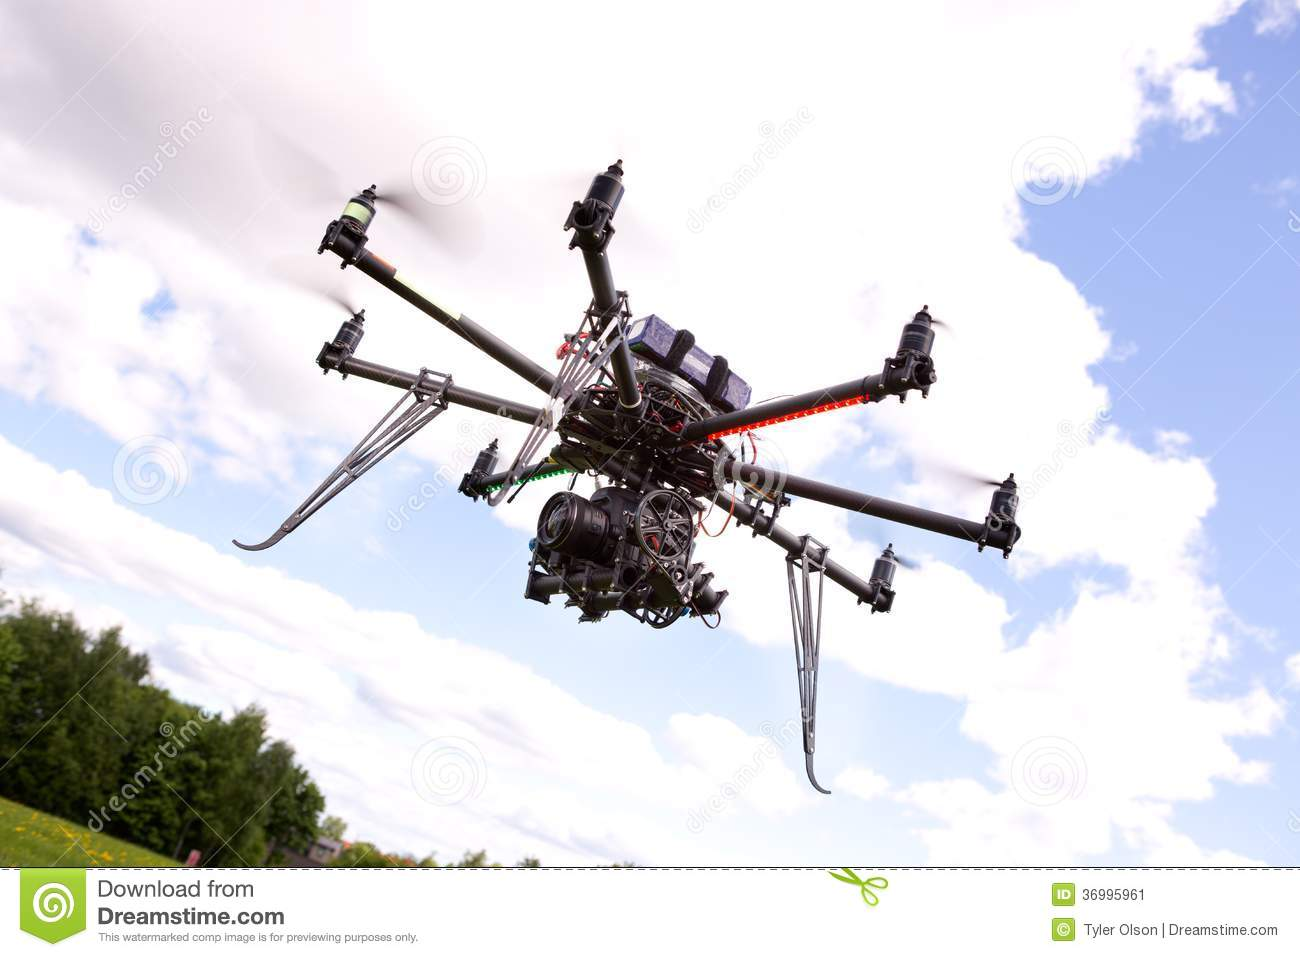 a remote control helicopter with camera with Stock Image Uav Photography Helicopter Multirotor Slr Camera Attached Image36995961 on Wholesale  posite Video Input Connector likewise Helicoptere Rc Geant C102x2236617 also 32376603819 in addition Stock Illustration Side View Drone Vector Illustration Image50270363 further Stock Image Uav Photography Helicopter Multirotor Slr Camera Attached Image36995961.